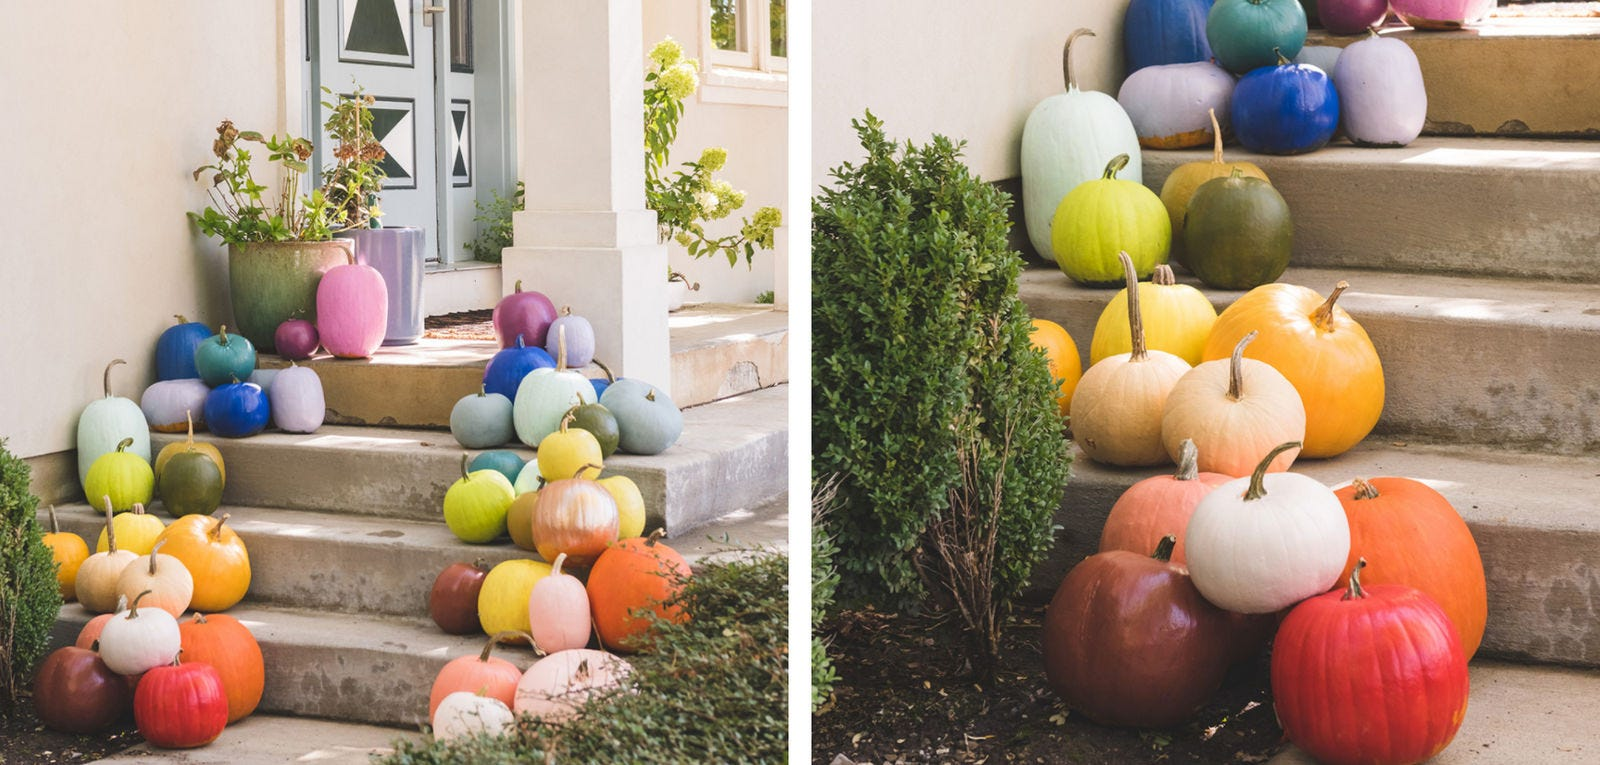 Colorful painted pumpkins on a porch.